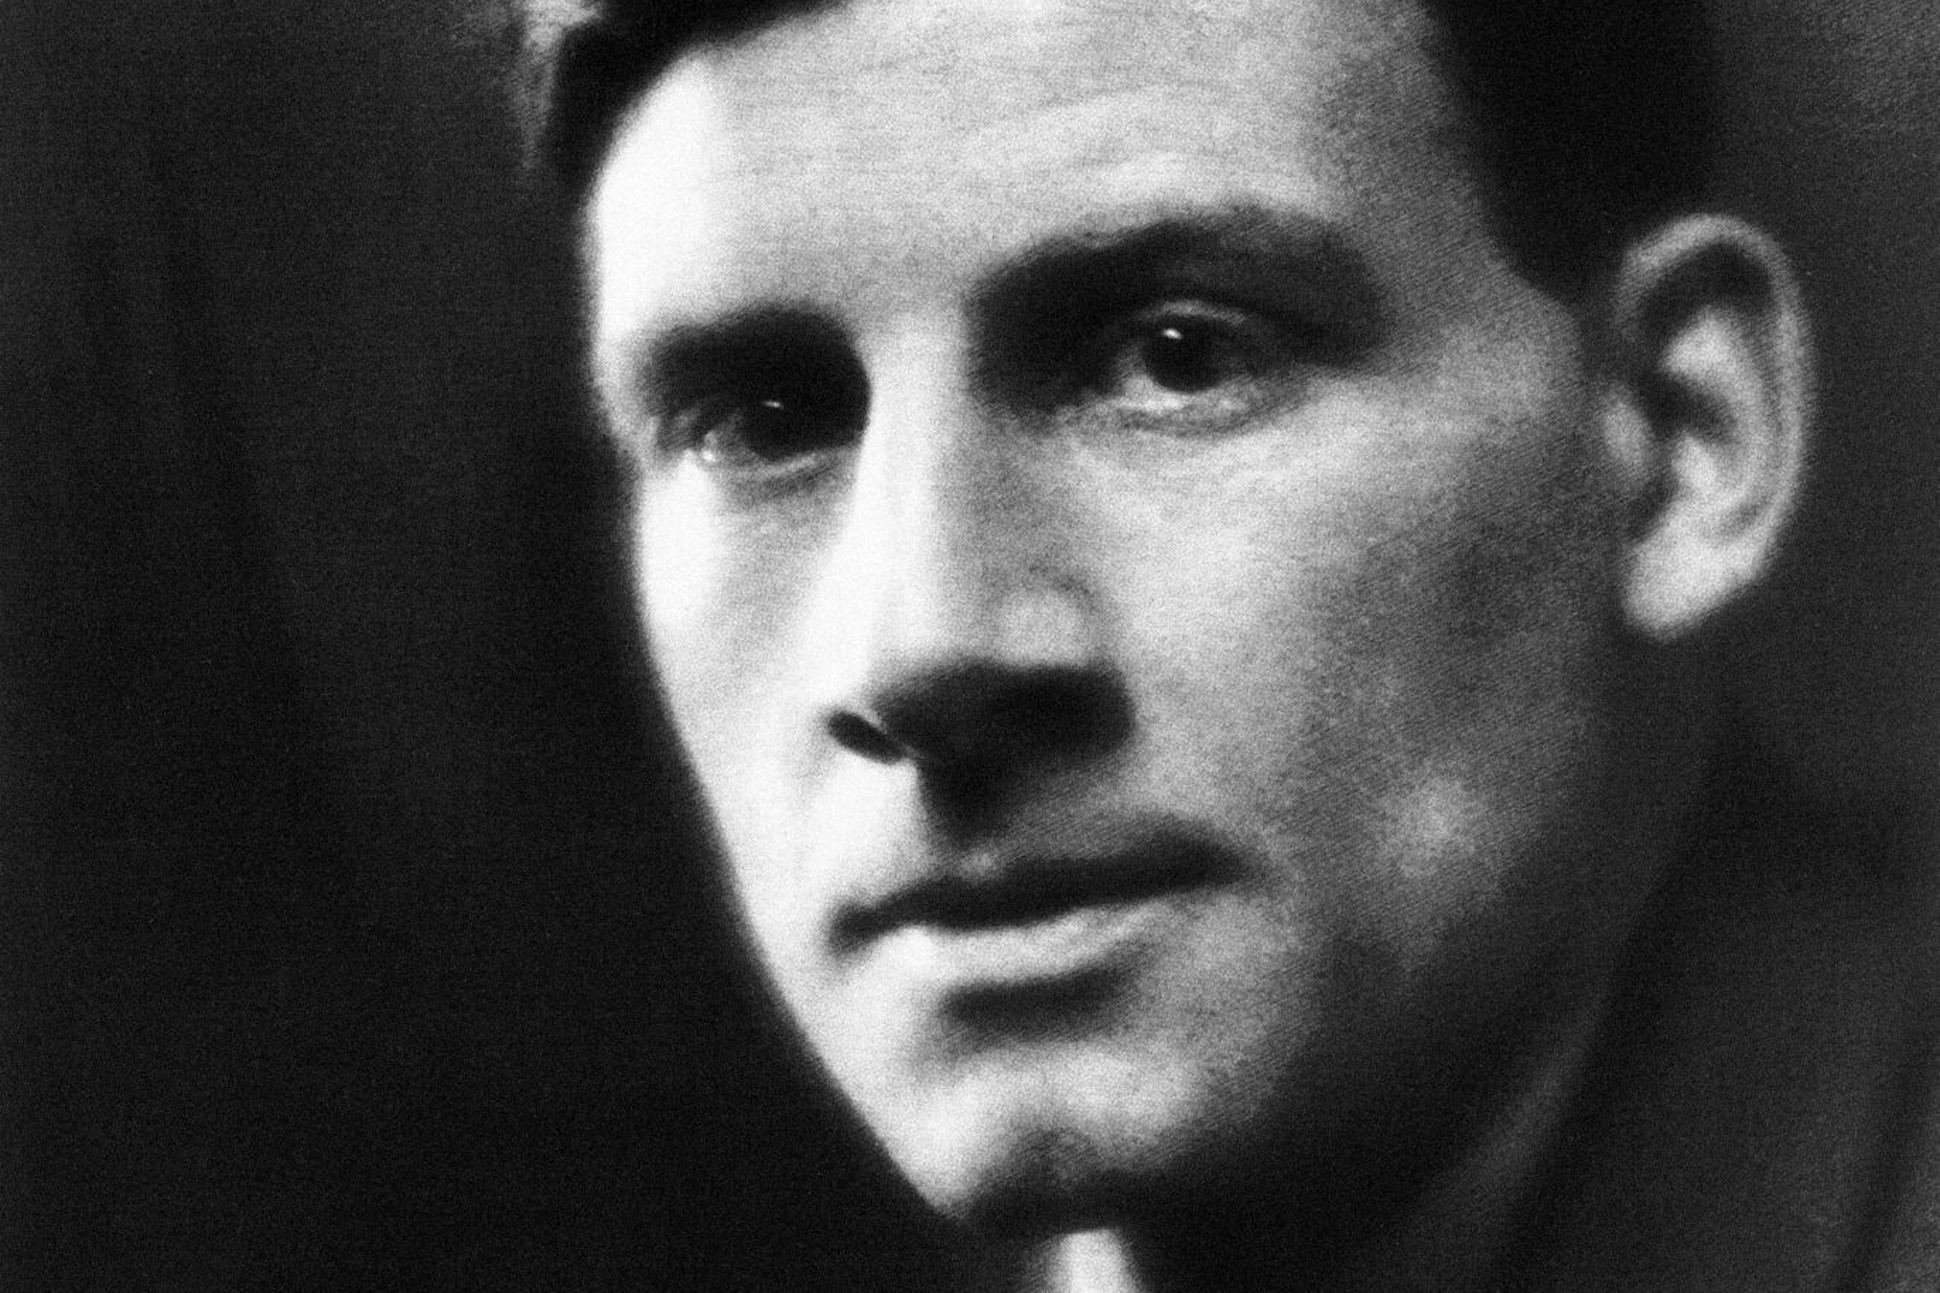 """glory of women siegfried sassoon Siegfried sassoon's poem """"glory to women"""" composed in 1917, during world war i, is an ironic and sarcastic poem, as it complains about blinded some british."""